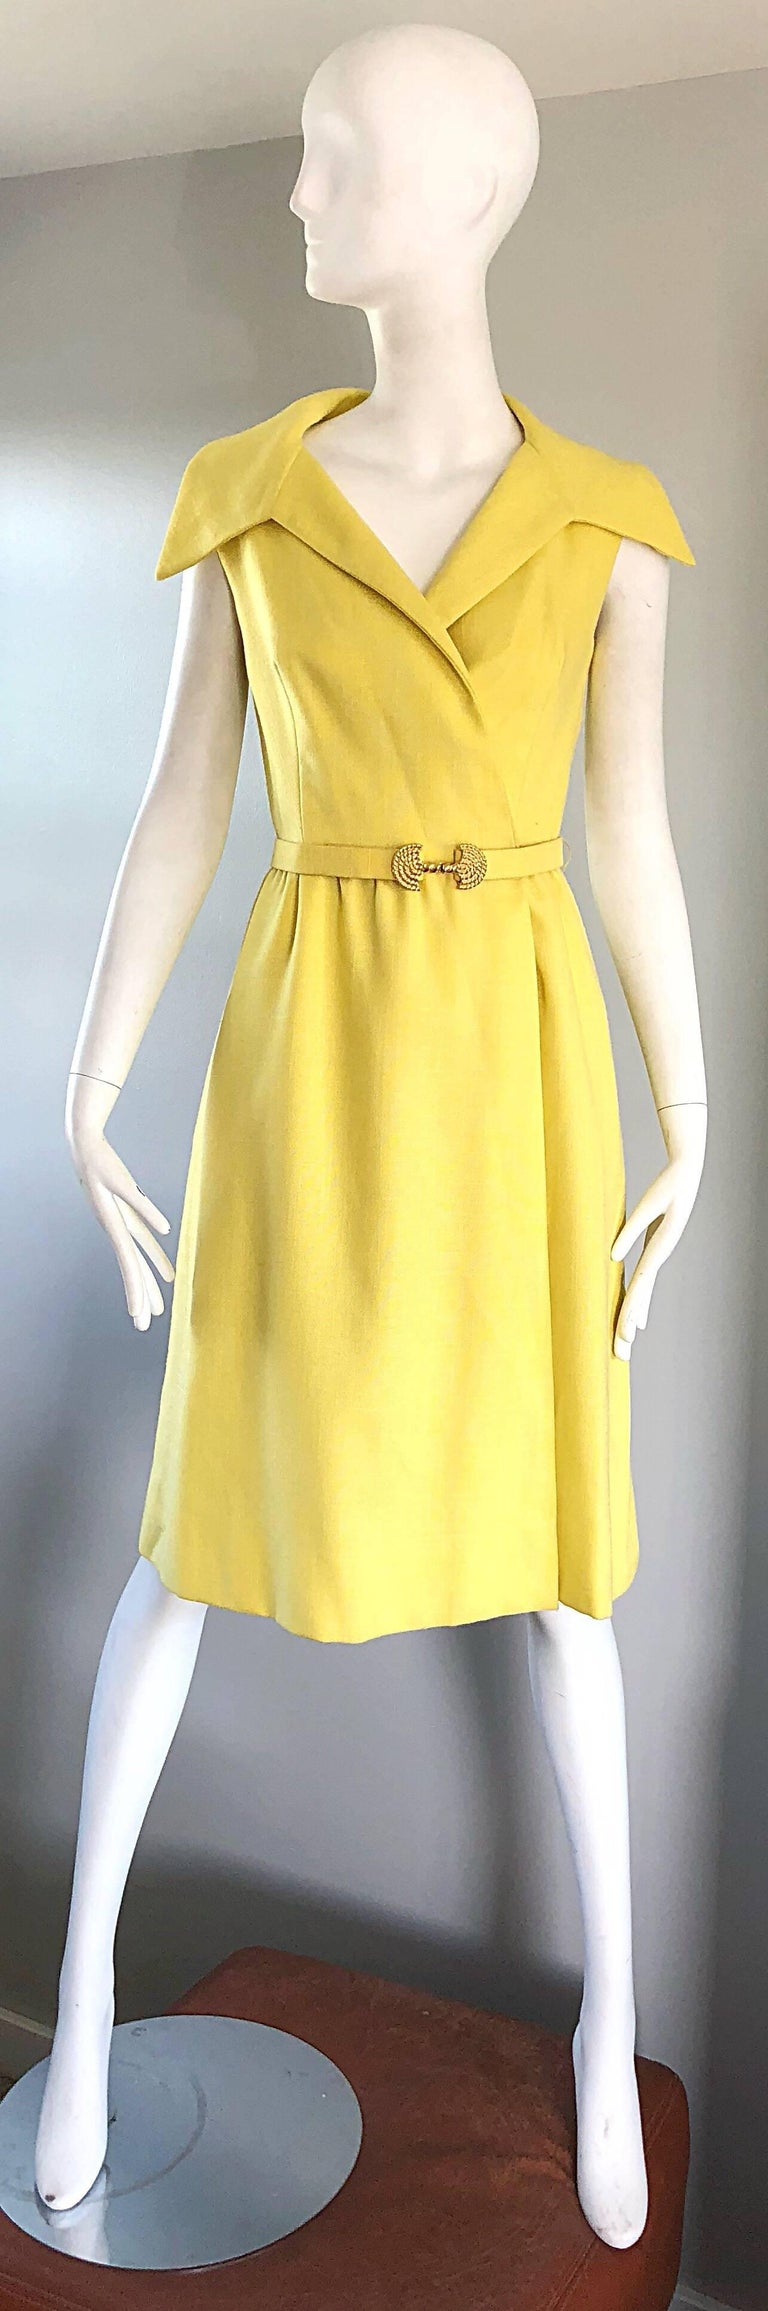 Mollie Parnis Canary Yellow Linen Vintage Belted Shirt Dress, 1950s ...